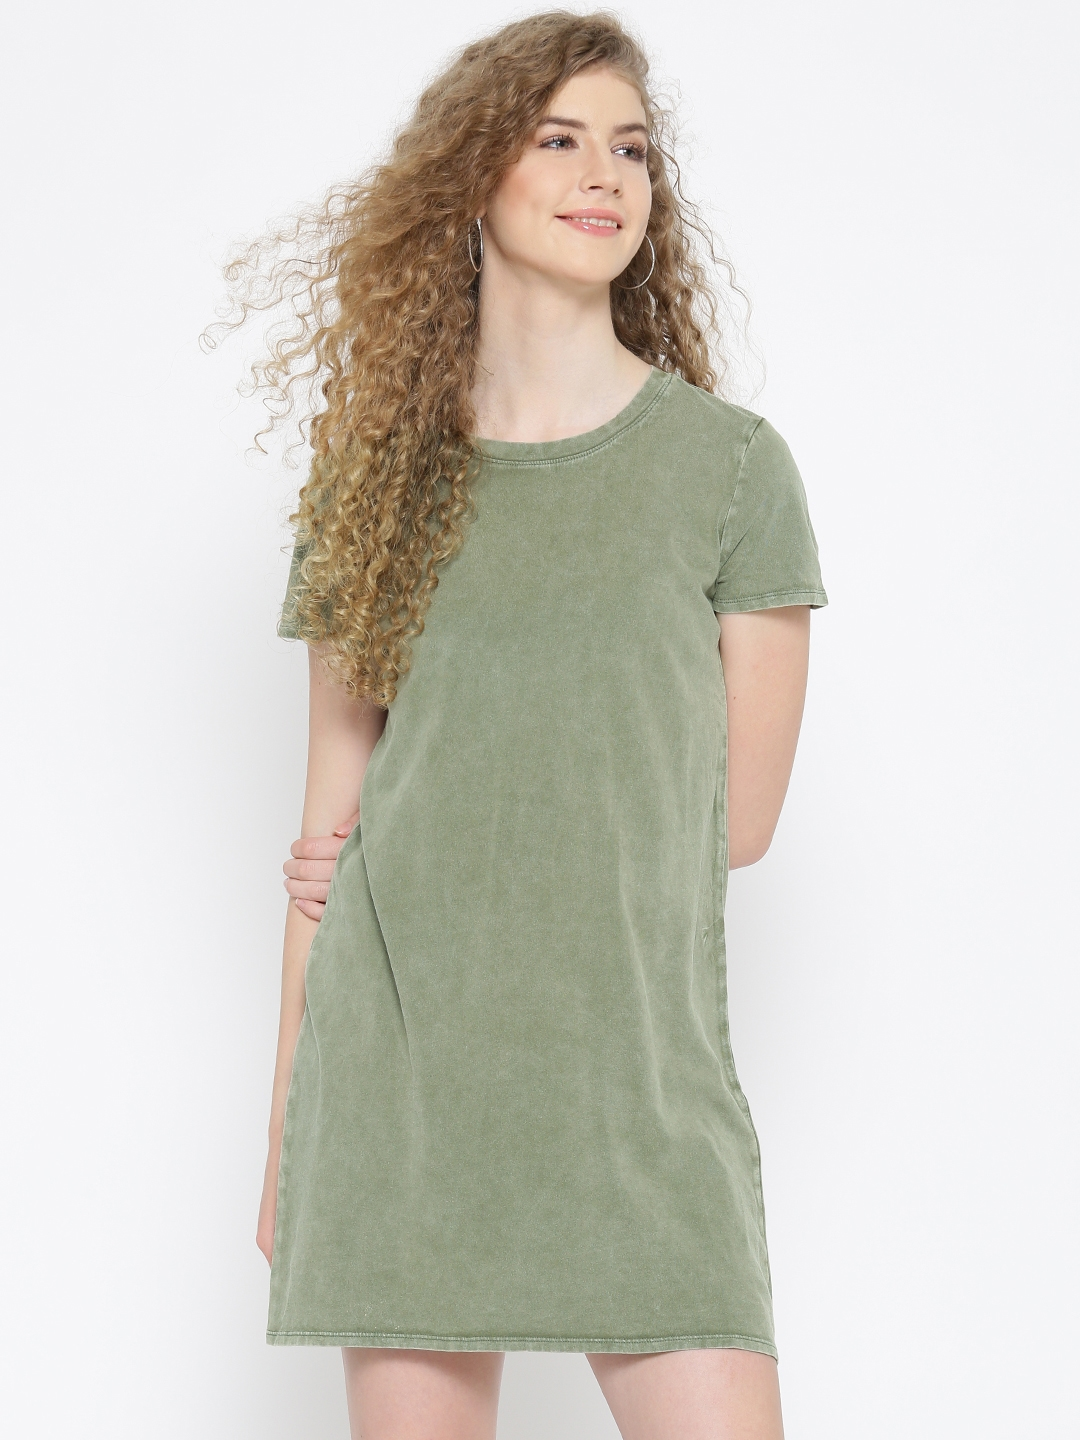 26a136e7cfe Buy FOREVER 21 Women Olive Green Solid T Shirt Dress - Dresses for ...